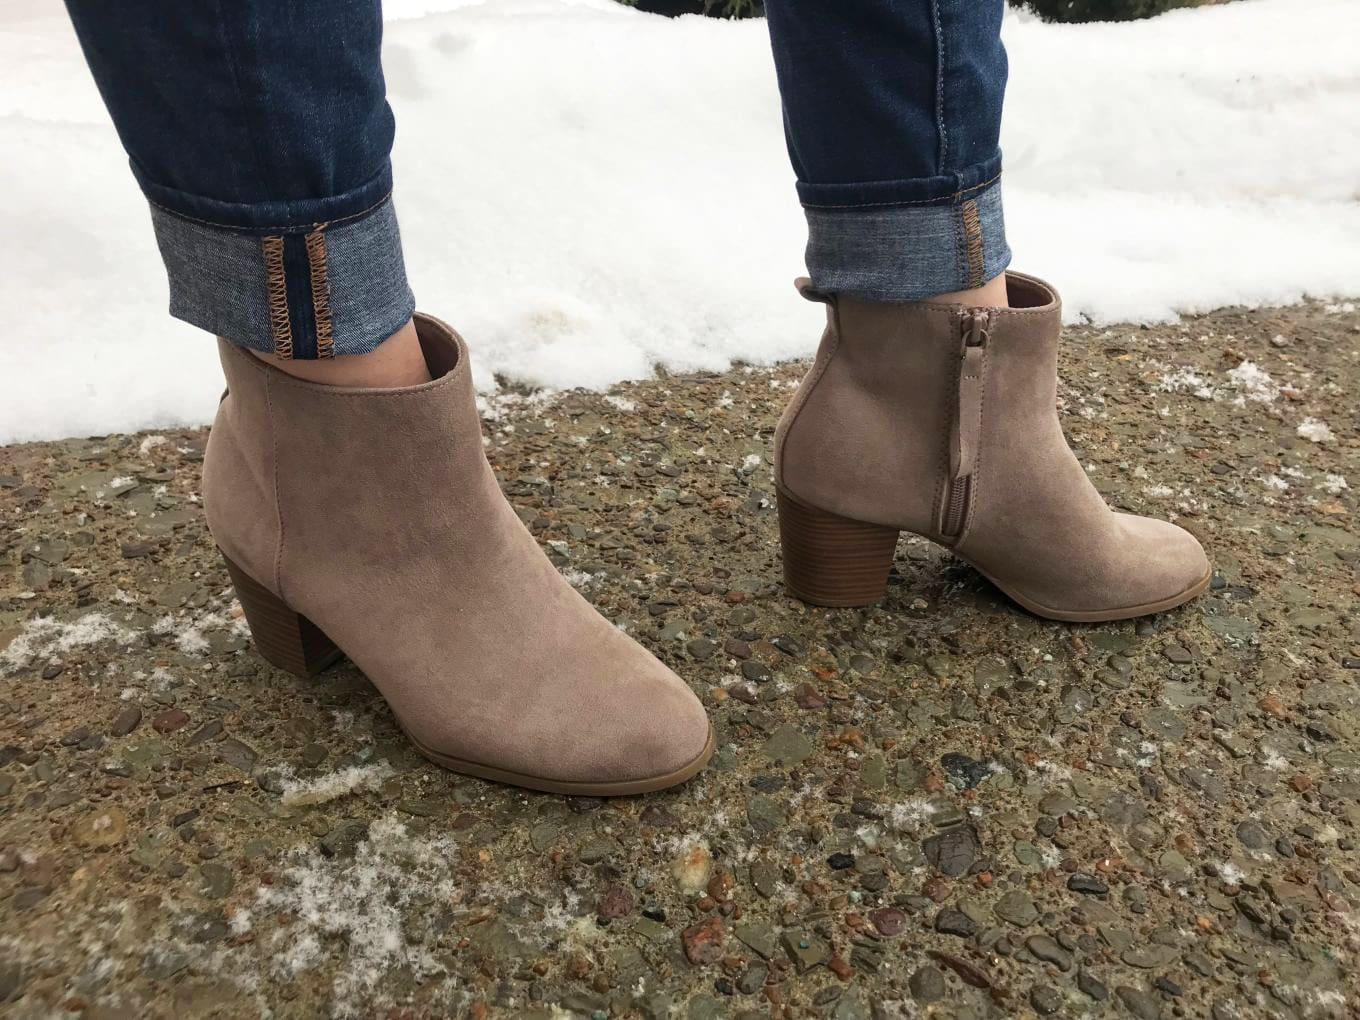 To accent her cuffed jeans, Erica wears a pair of chunky-heeled taupe ankle booties.